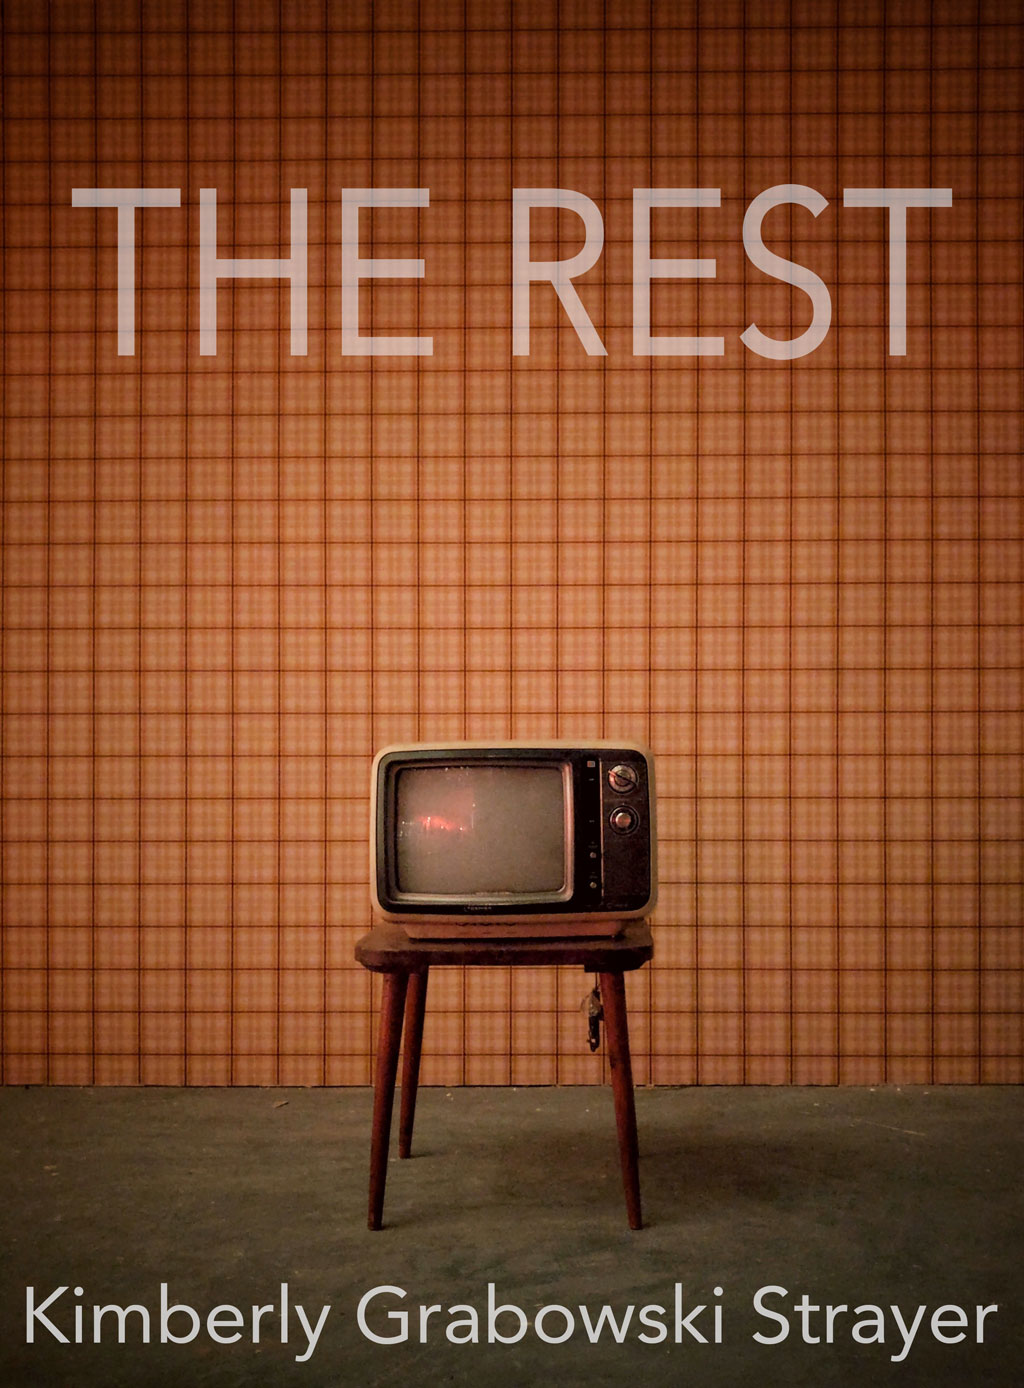 Vintage television on a small wooden table in front of a brown plaid wall, with the title of the piece in faded grey font